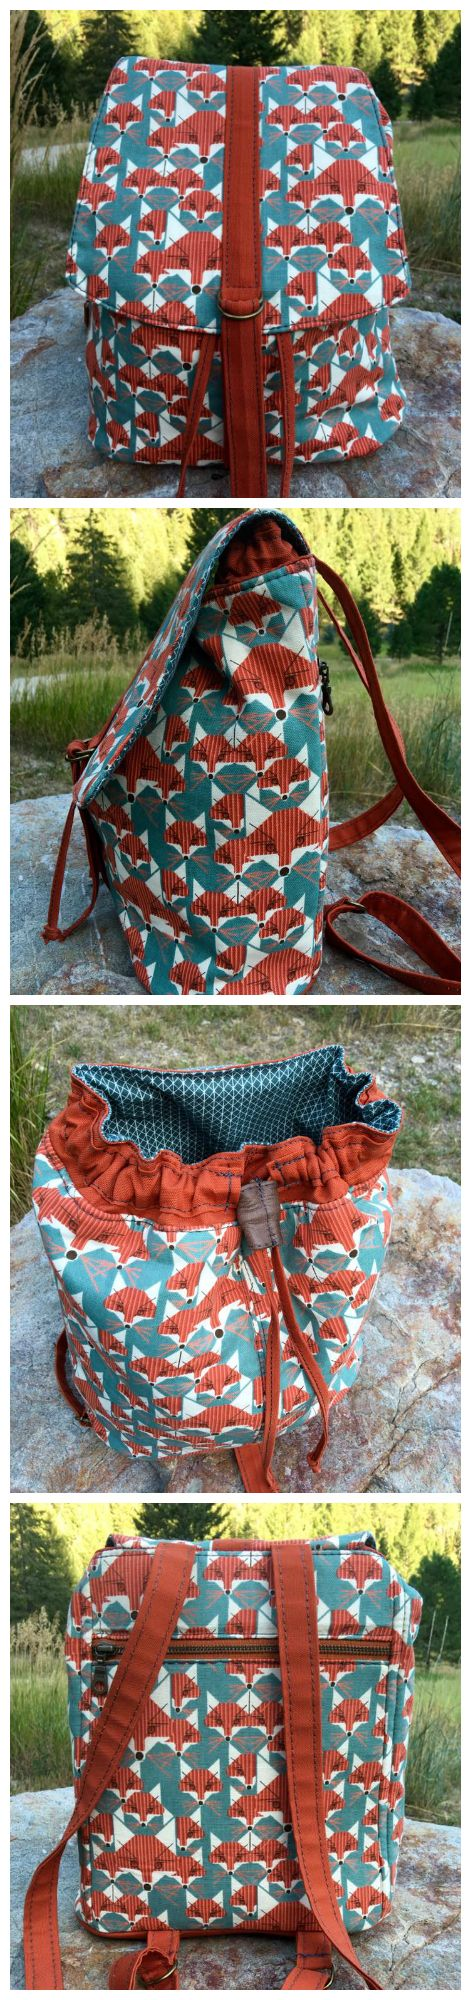 Lucy backpack sewing pattern.  Very versatile bag, looks beautiful and not too difficult to sew.  Pattern from Swoon, photos by Beatriz Padron McDavid